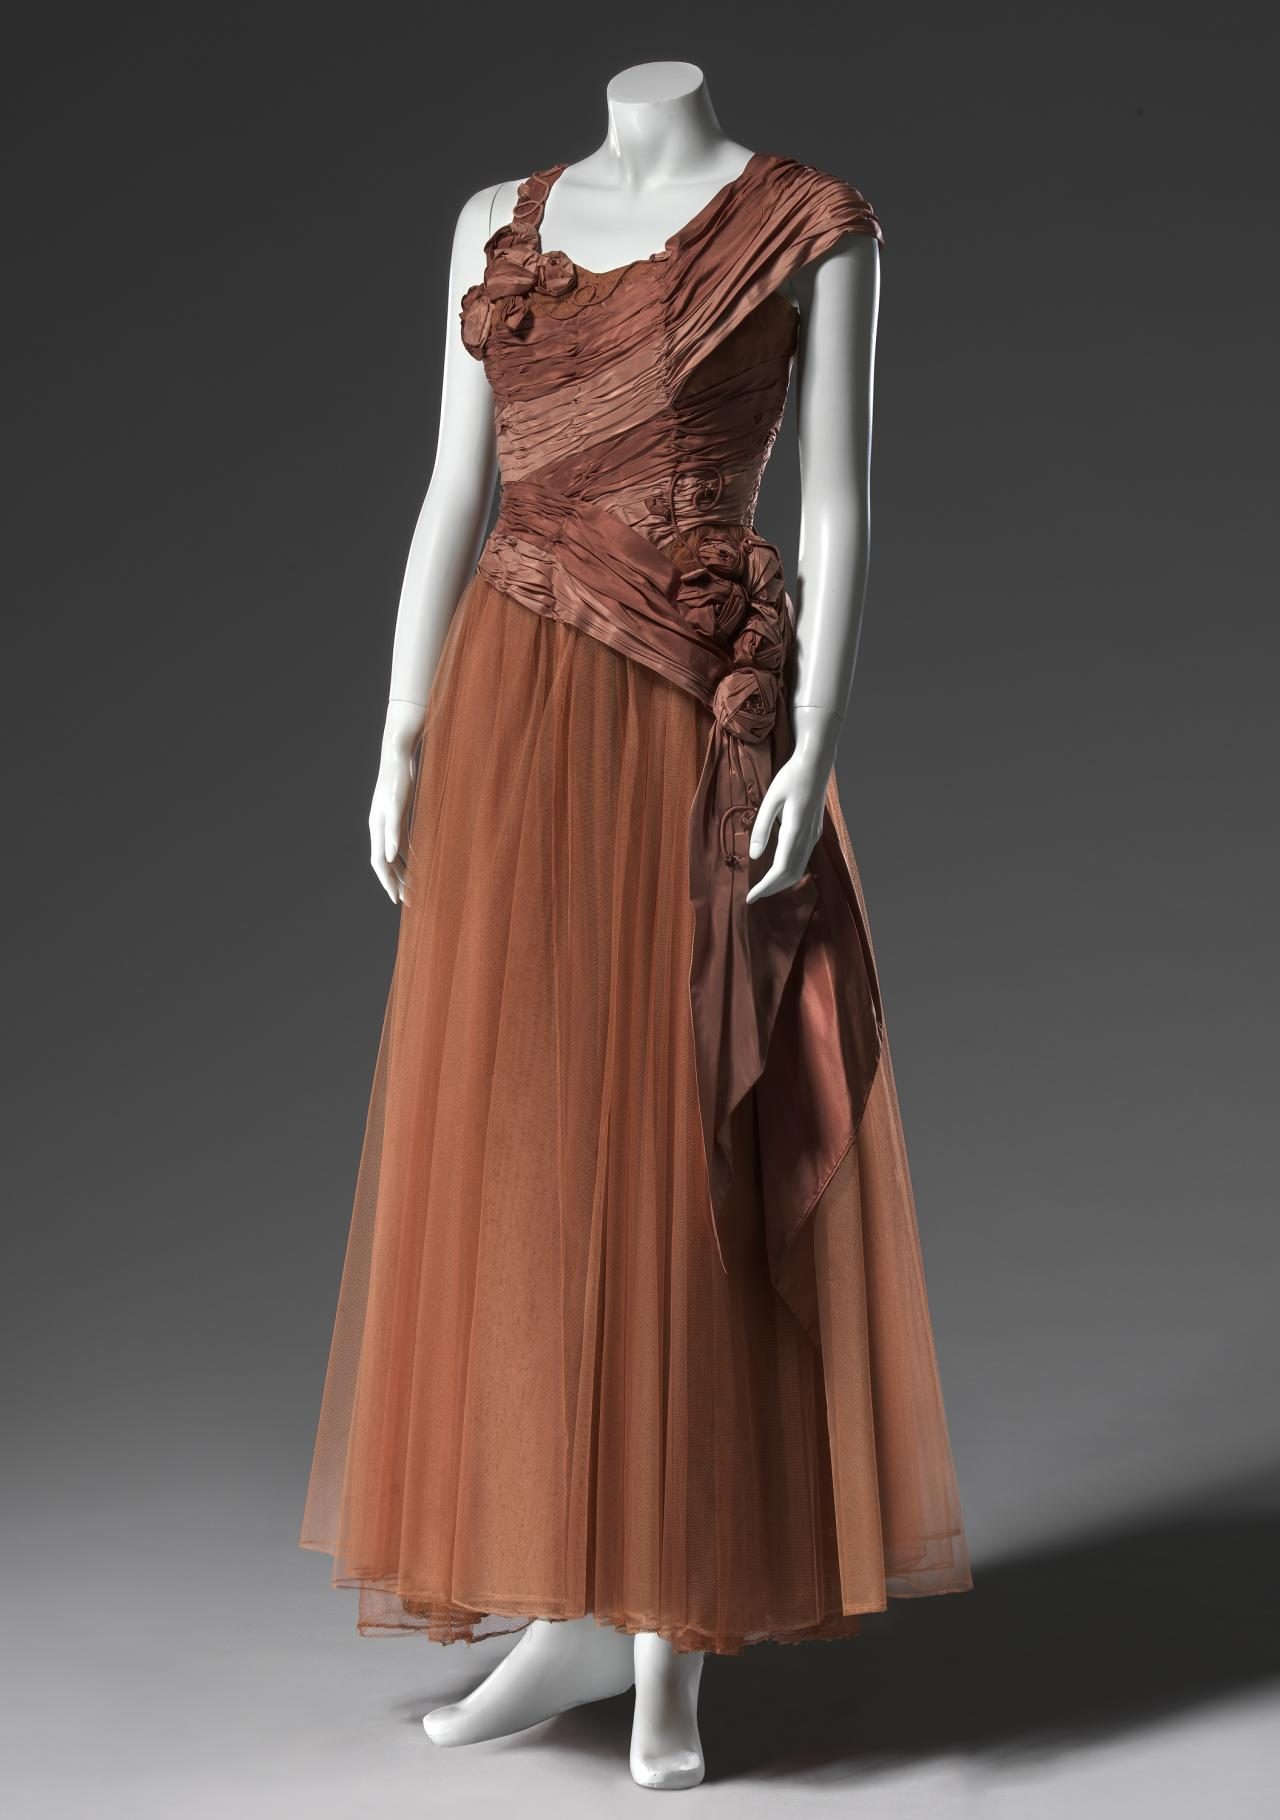 Ball gown   HARTNELL OF MELBOURNE PTY LTD., Melbourne (fashion house ...